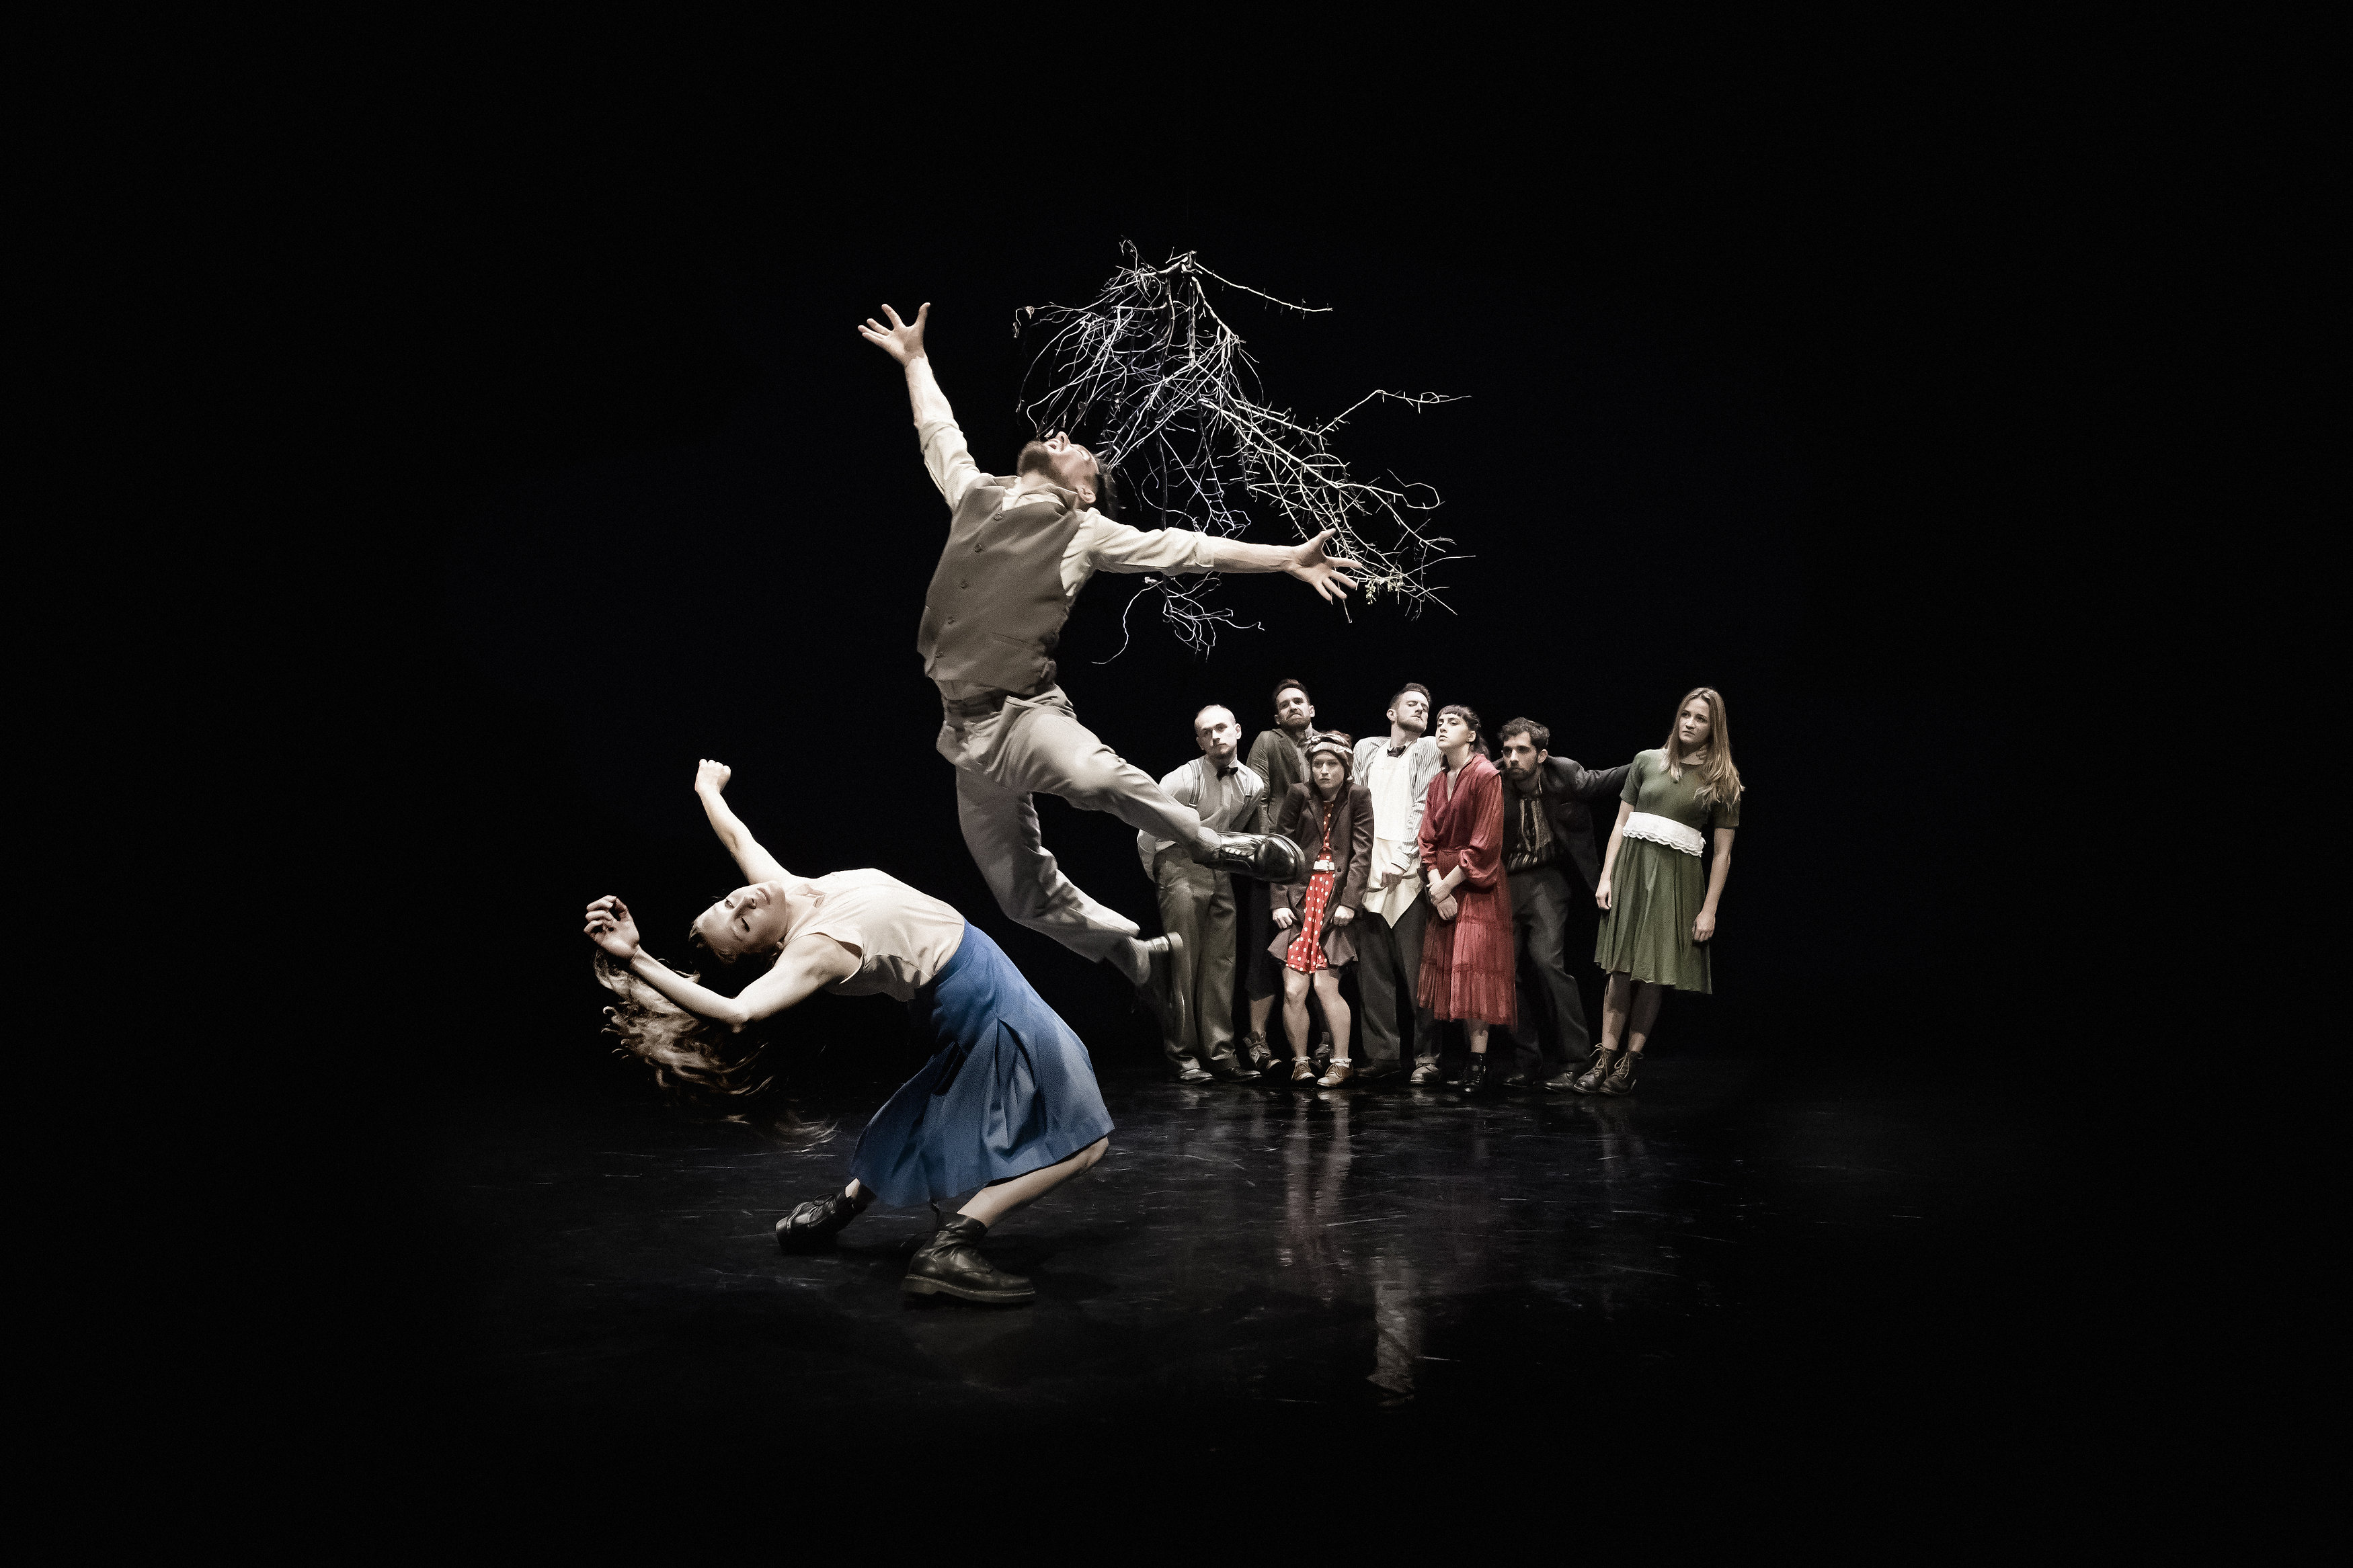 National Dance Company Wales announces Spring tour 2016